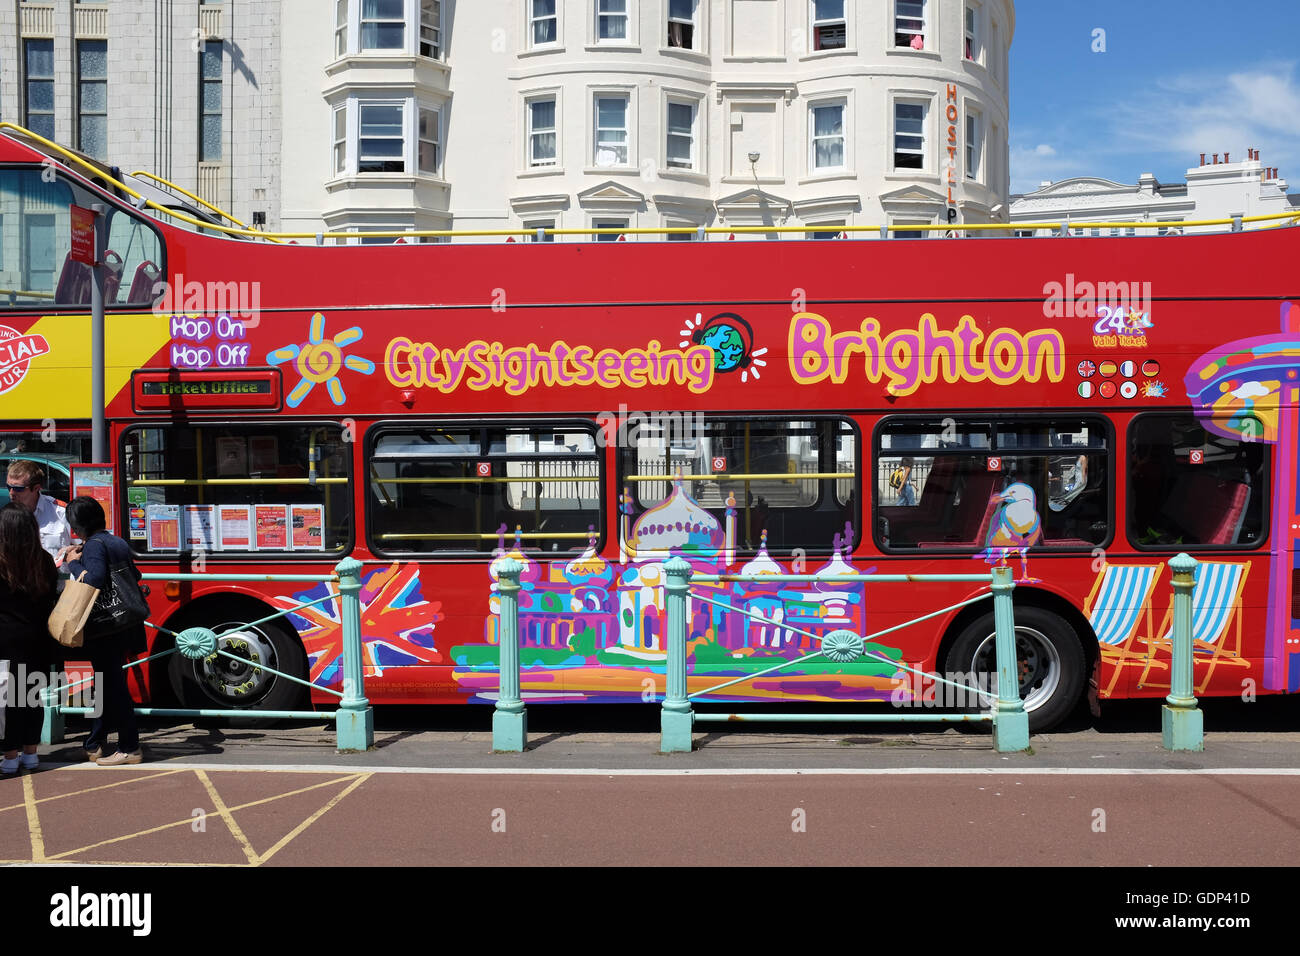 A city sightseeing bus in Brighton in the south of England. - Stock Image